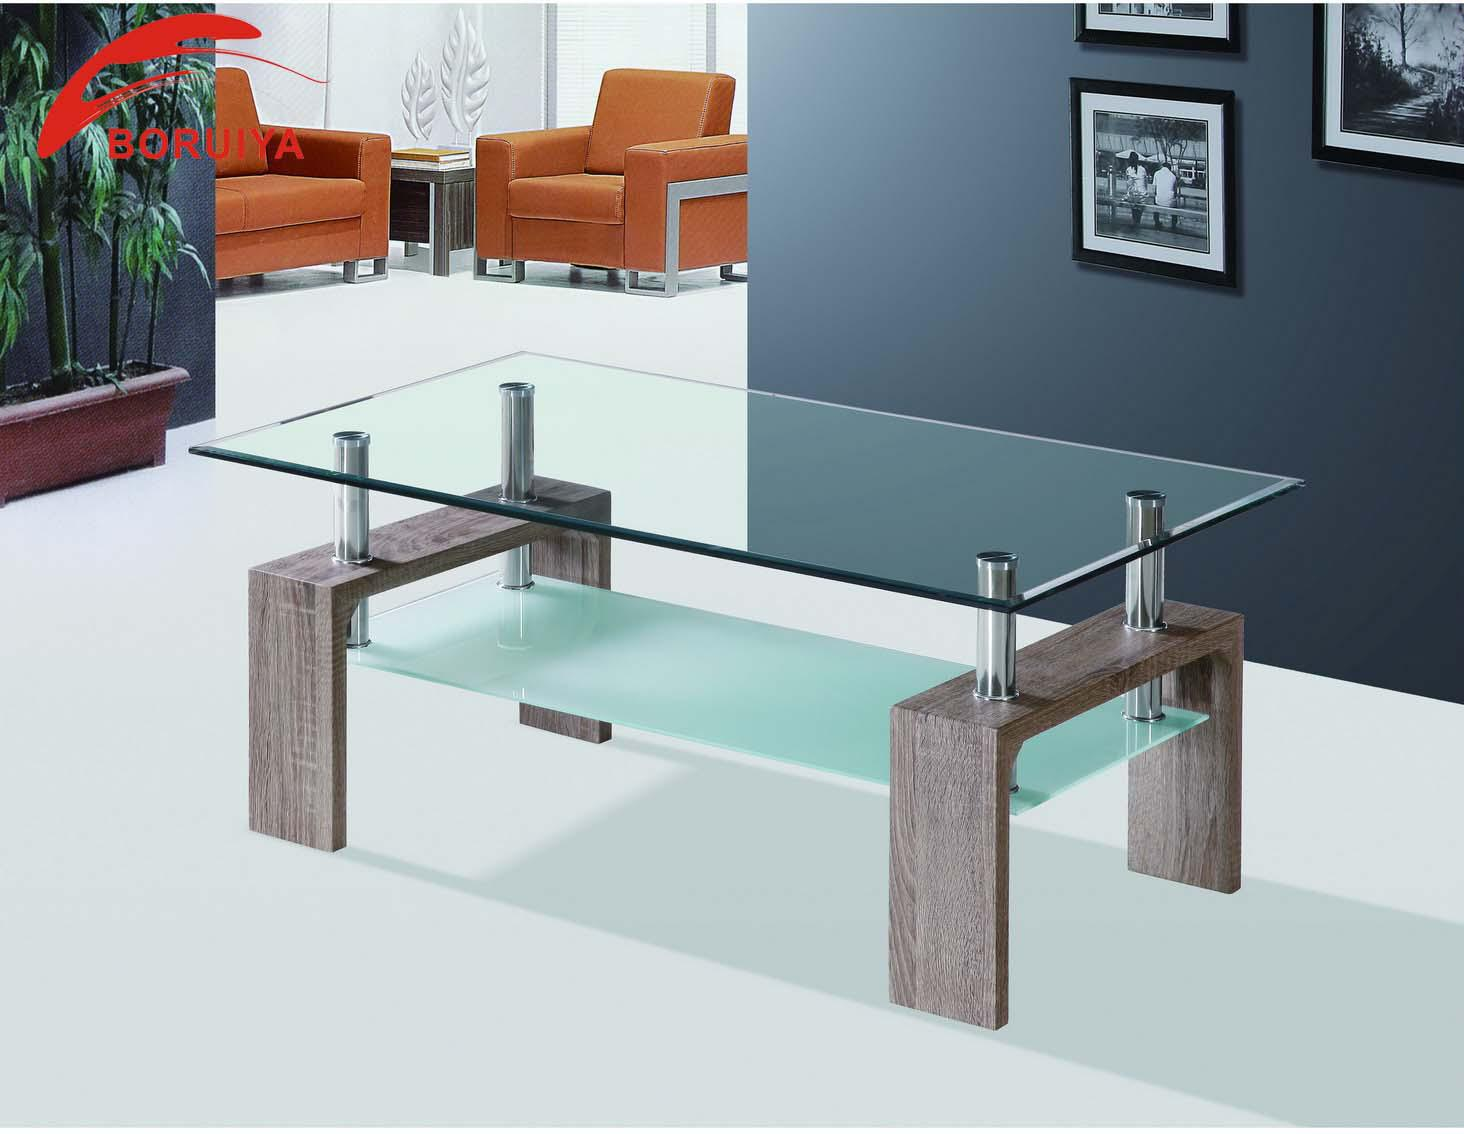 Table Desig Living Room Furniture Center Table Design Coffee Table